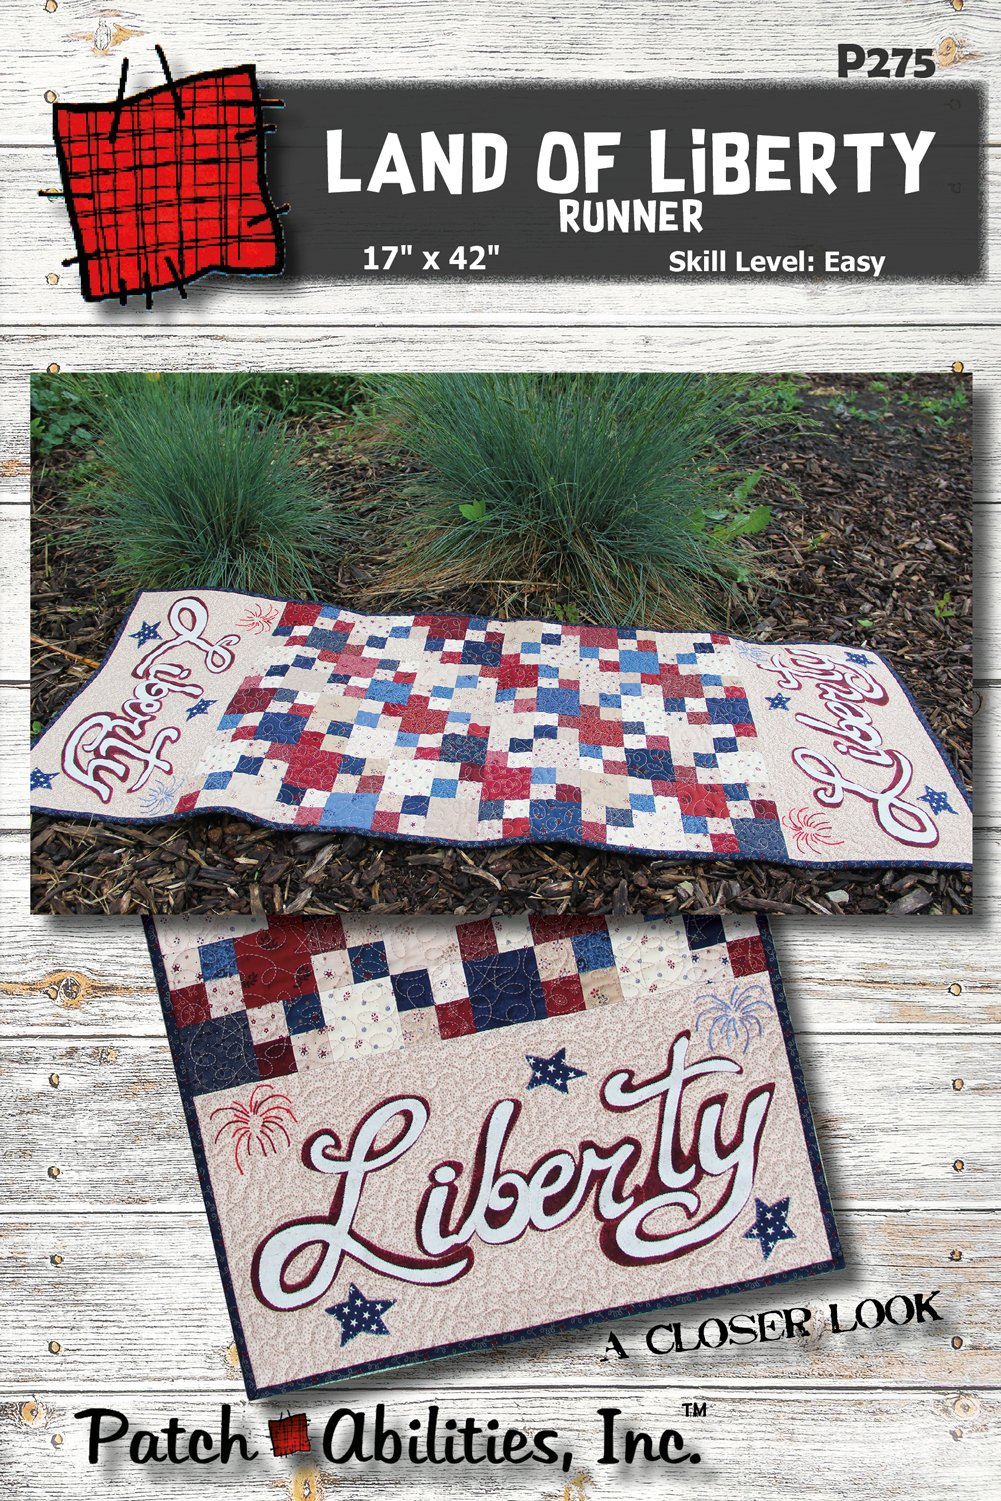 P275 Land of Liberty Table Runner